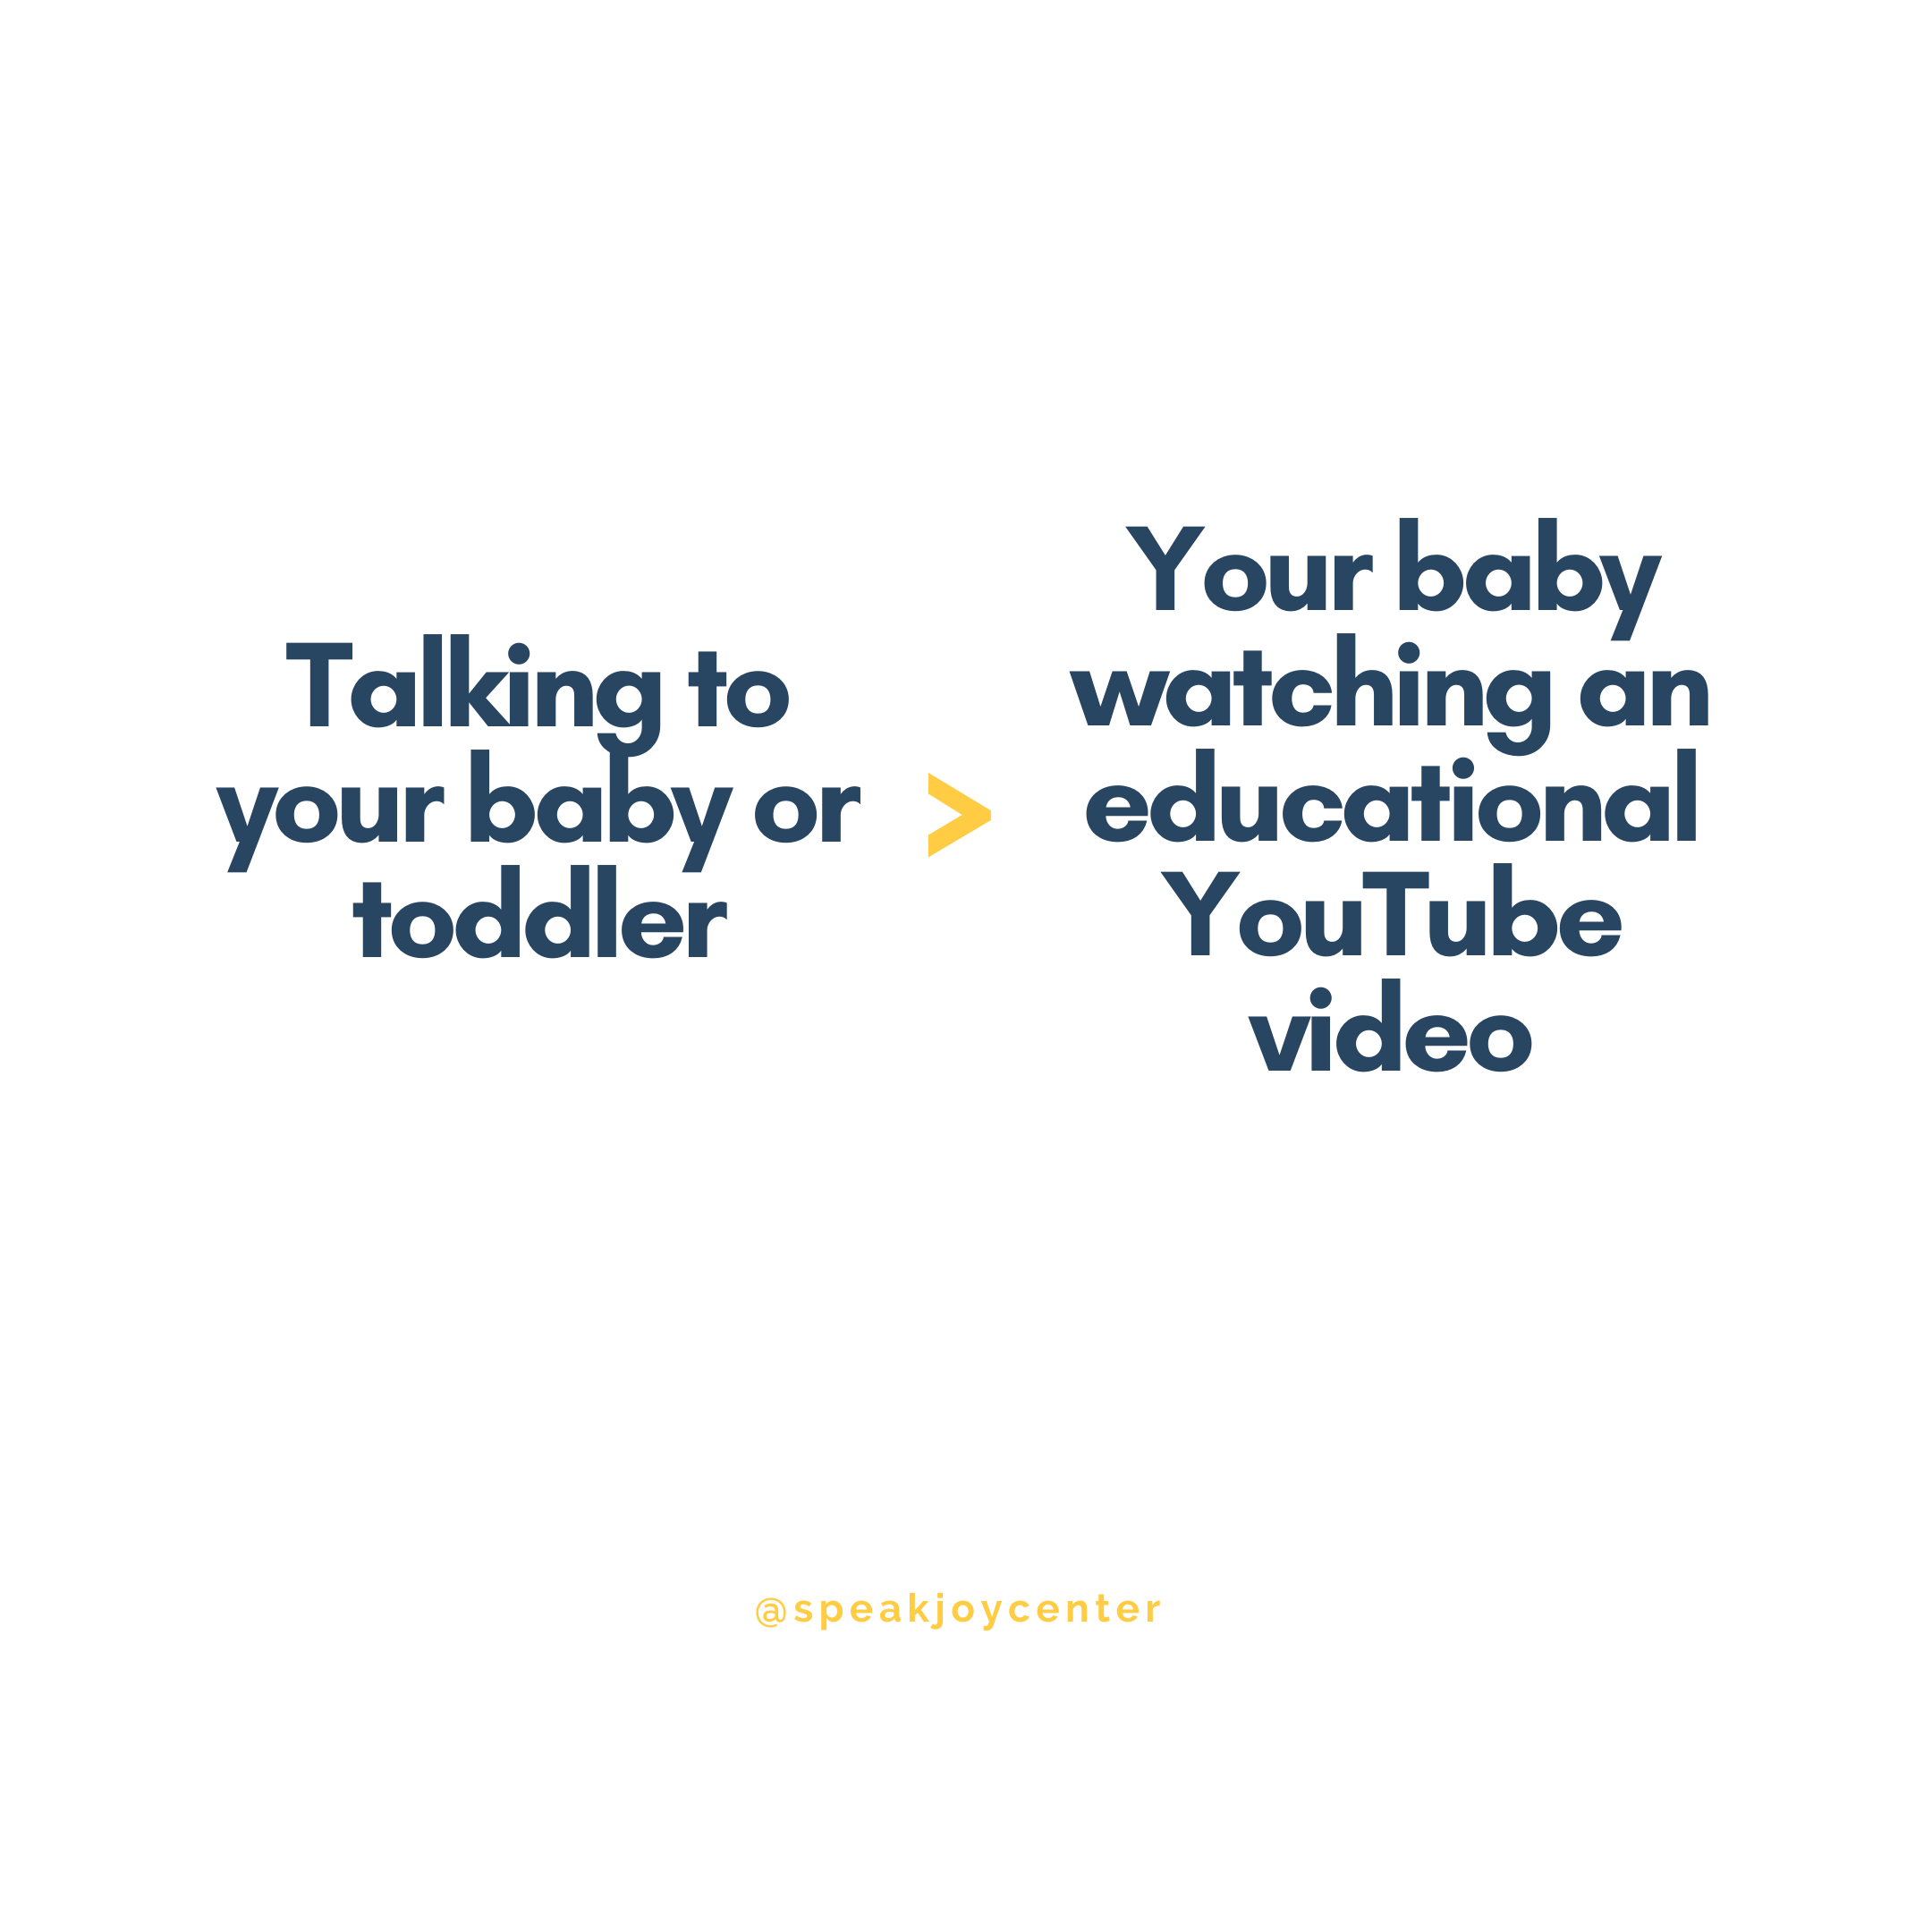 talk to your baby